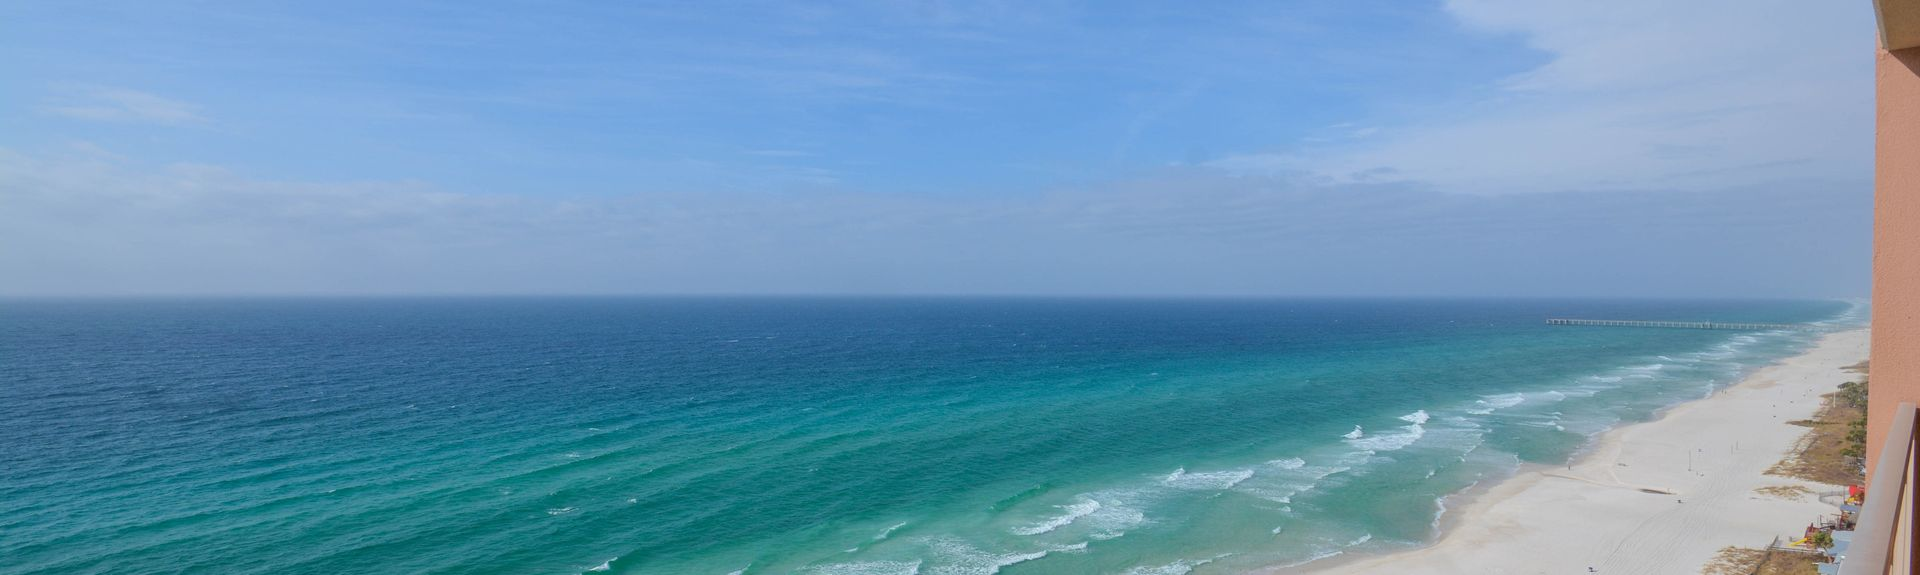 Sunrise Beach (Panama City Beach, Florida, USA)